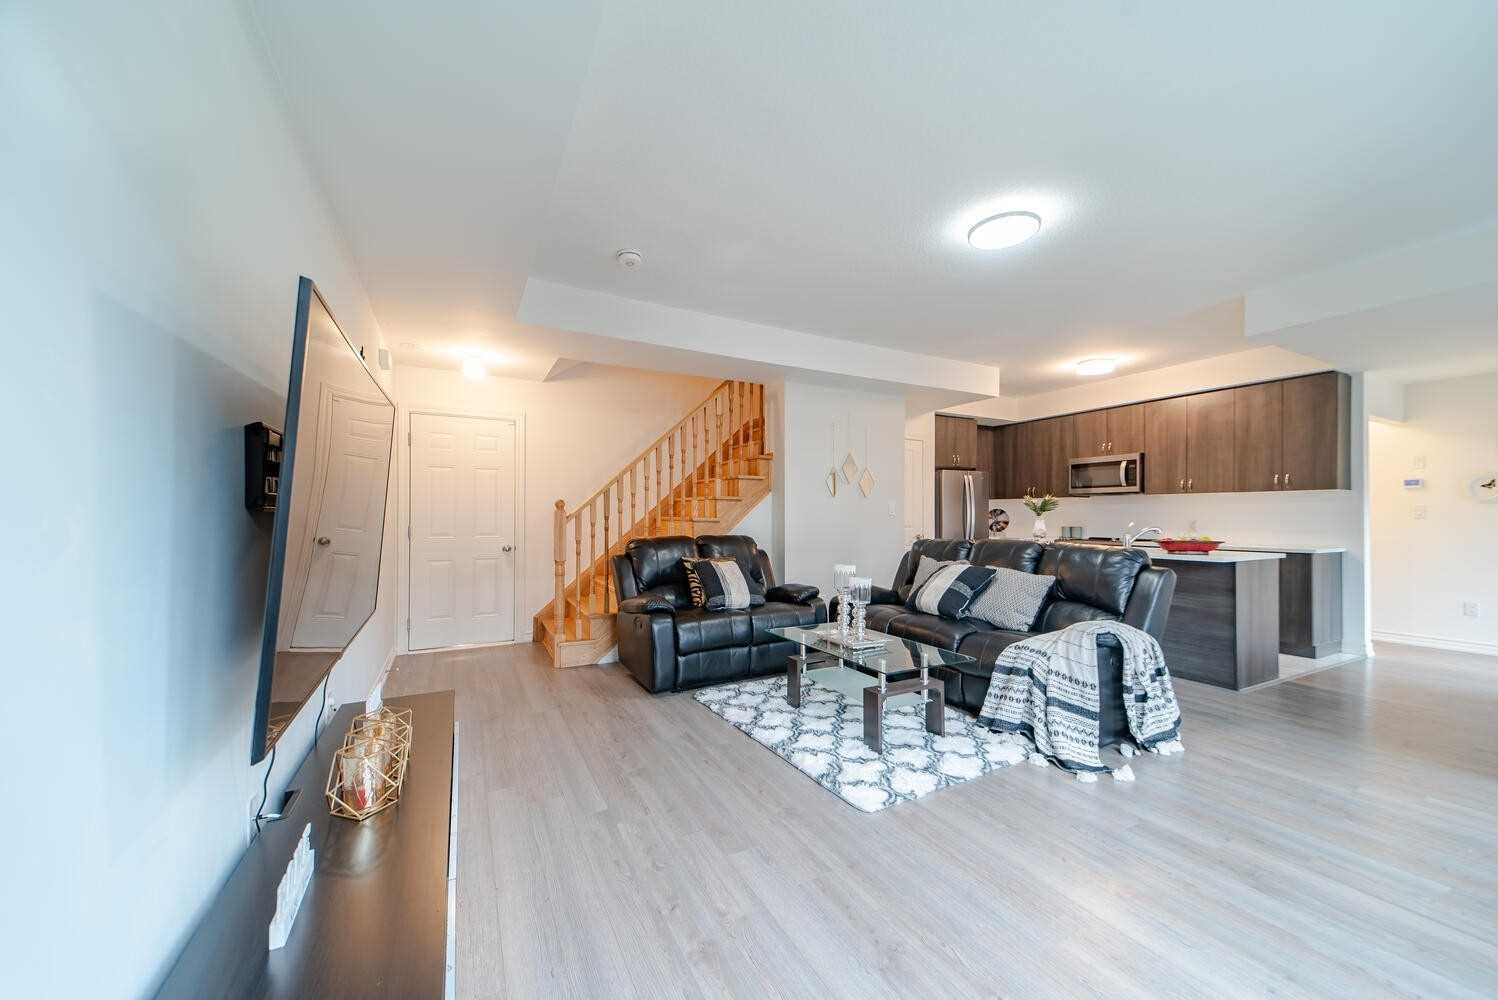 Image 36 of 40 showing inside of 3 Bedroom Condo Townhouse 2-Storey for Sale at 2738 William Jackson Dr Unit# 6, Pickering L1X0E6